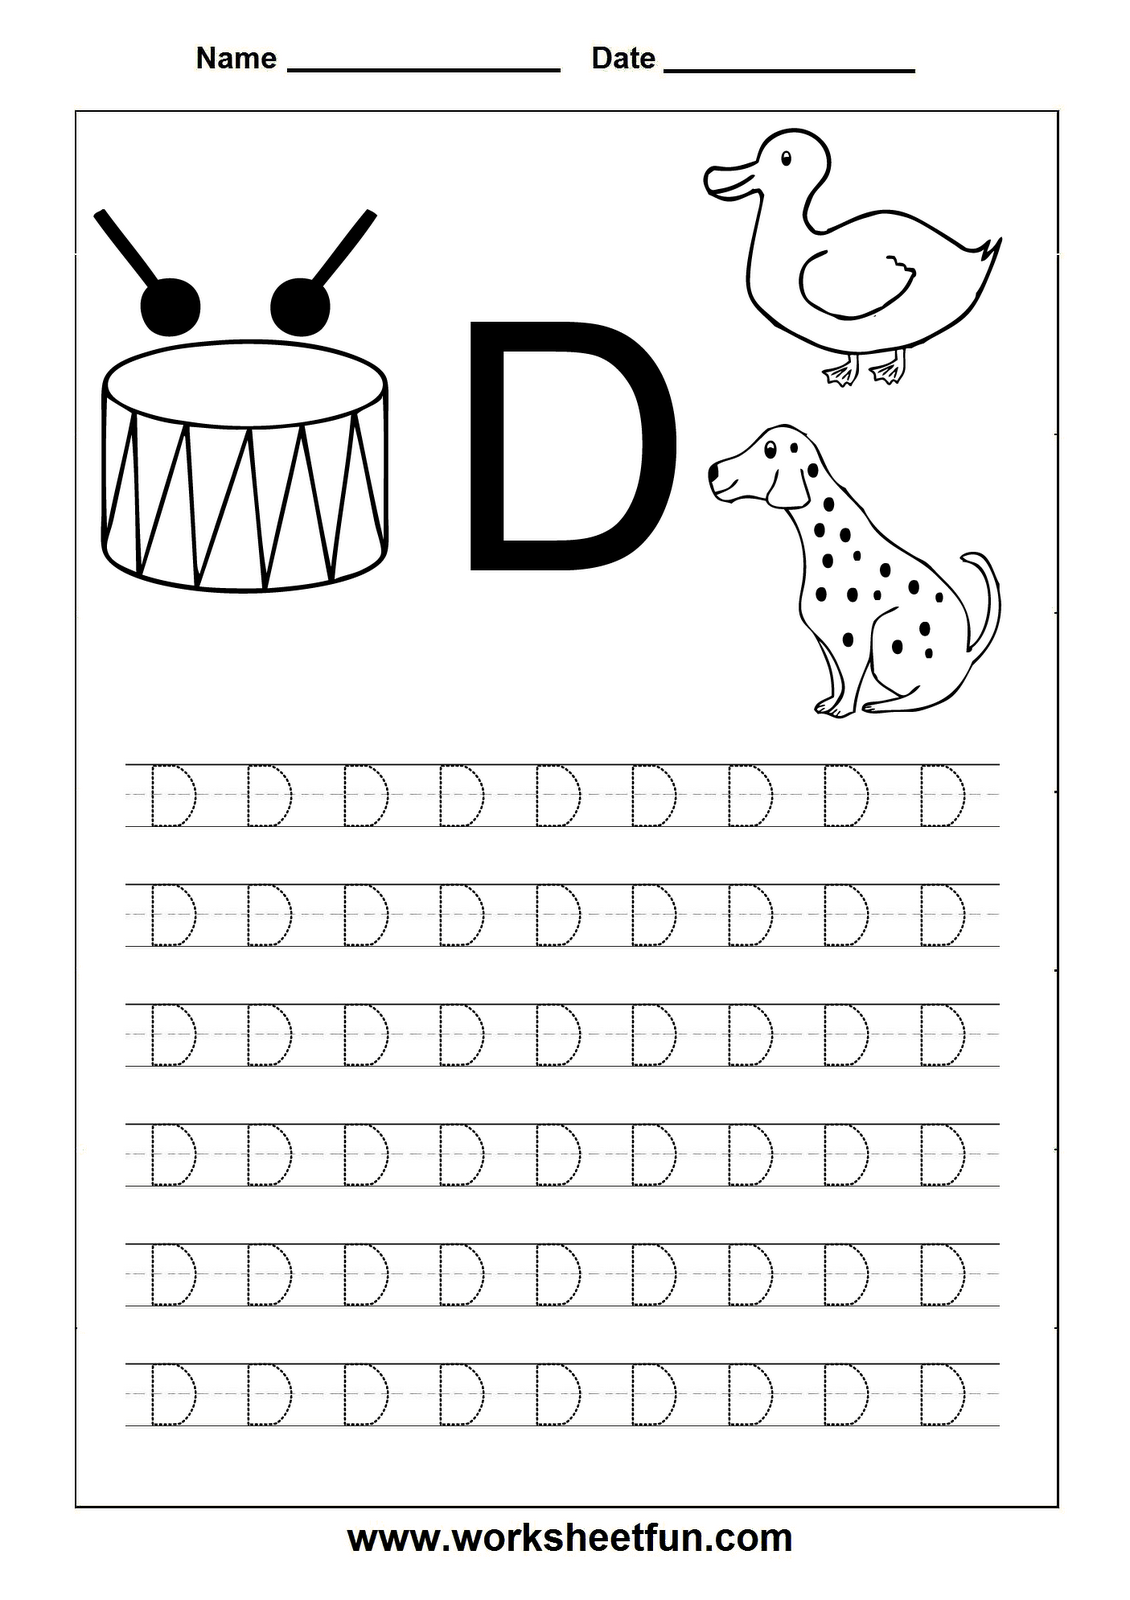 Letter D Worksheets Hd Wallpapers Download Free Letter D Worksheets Tumblr